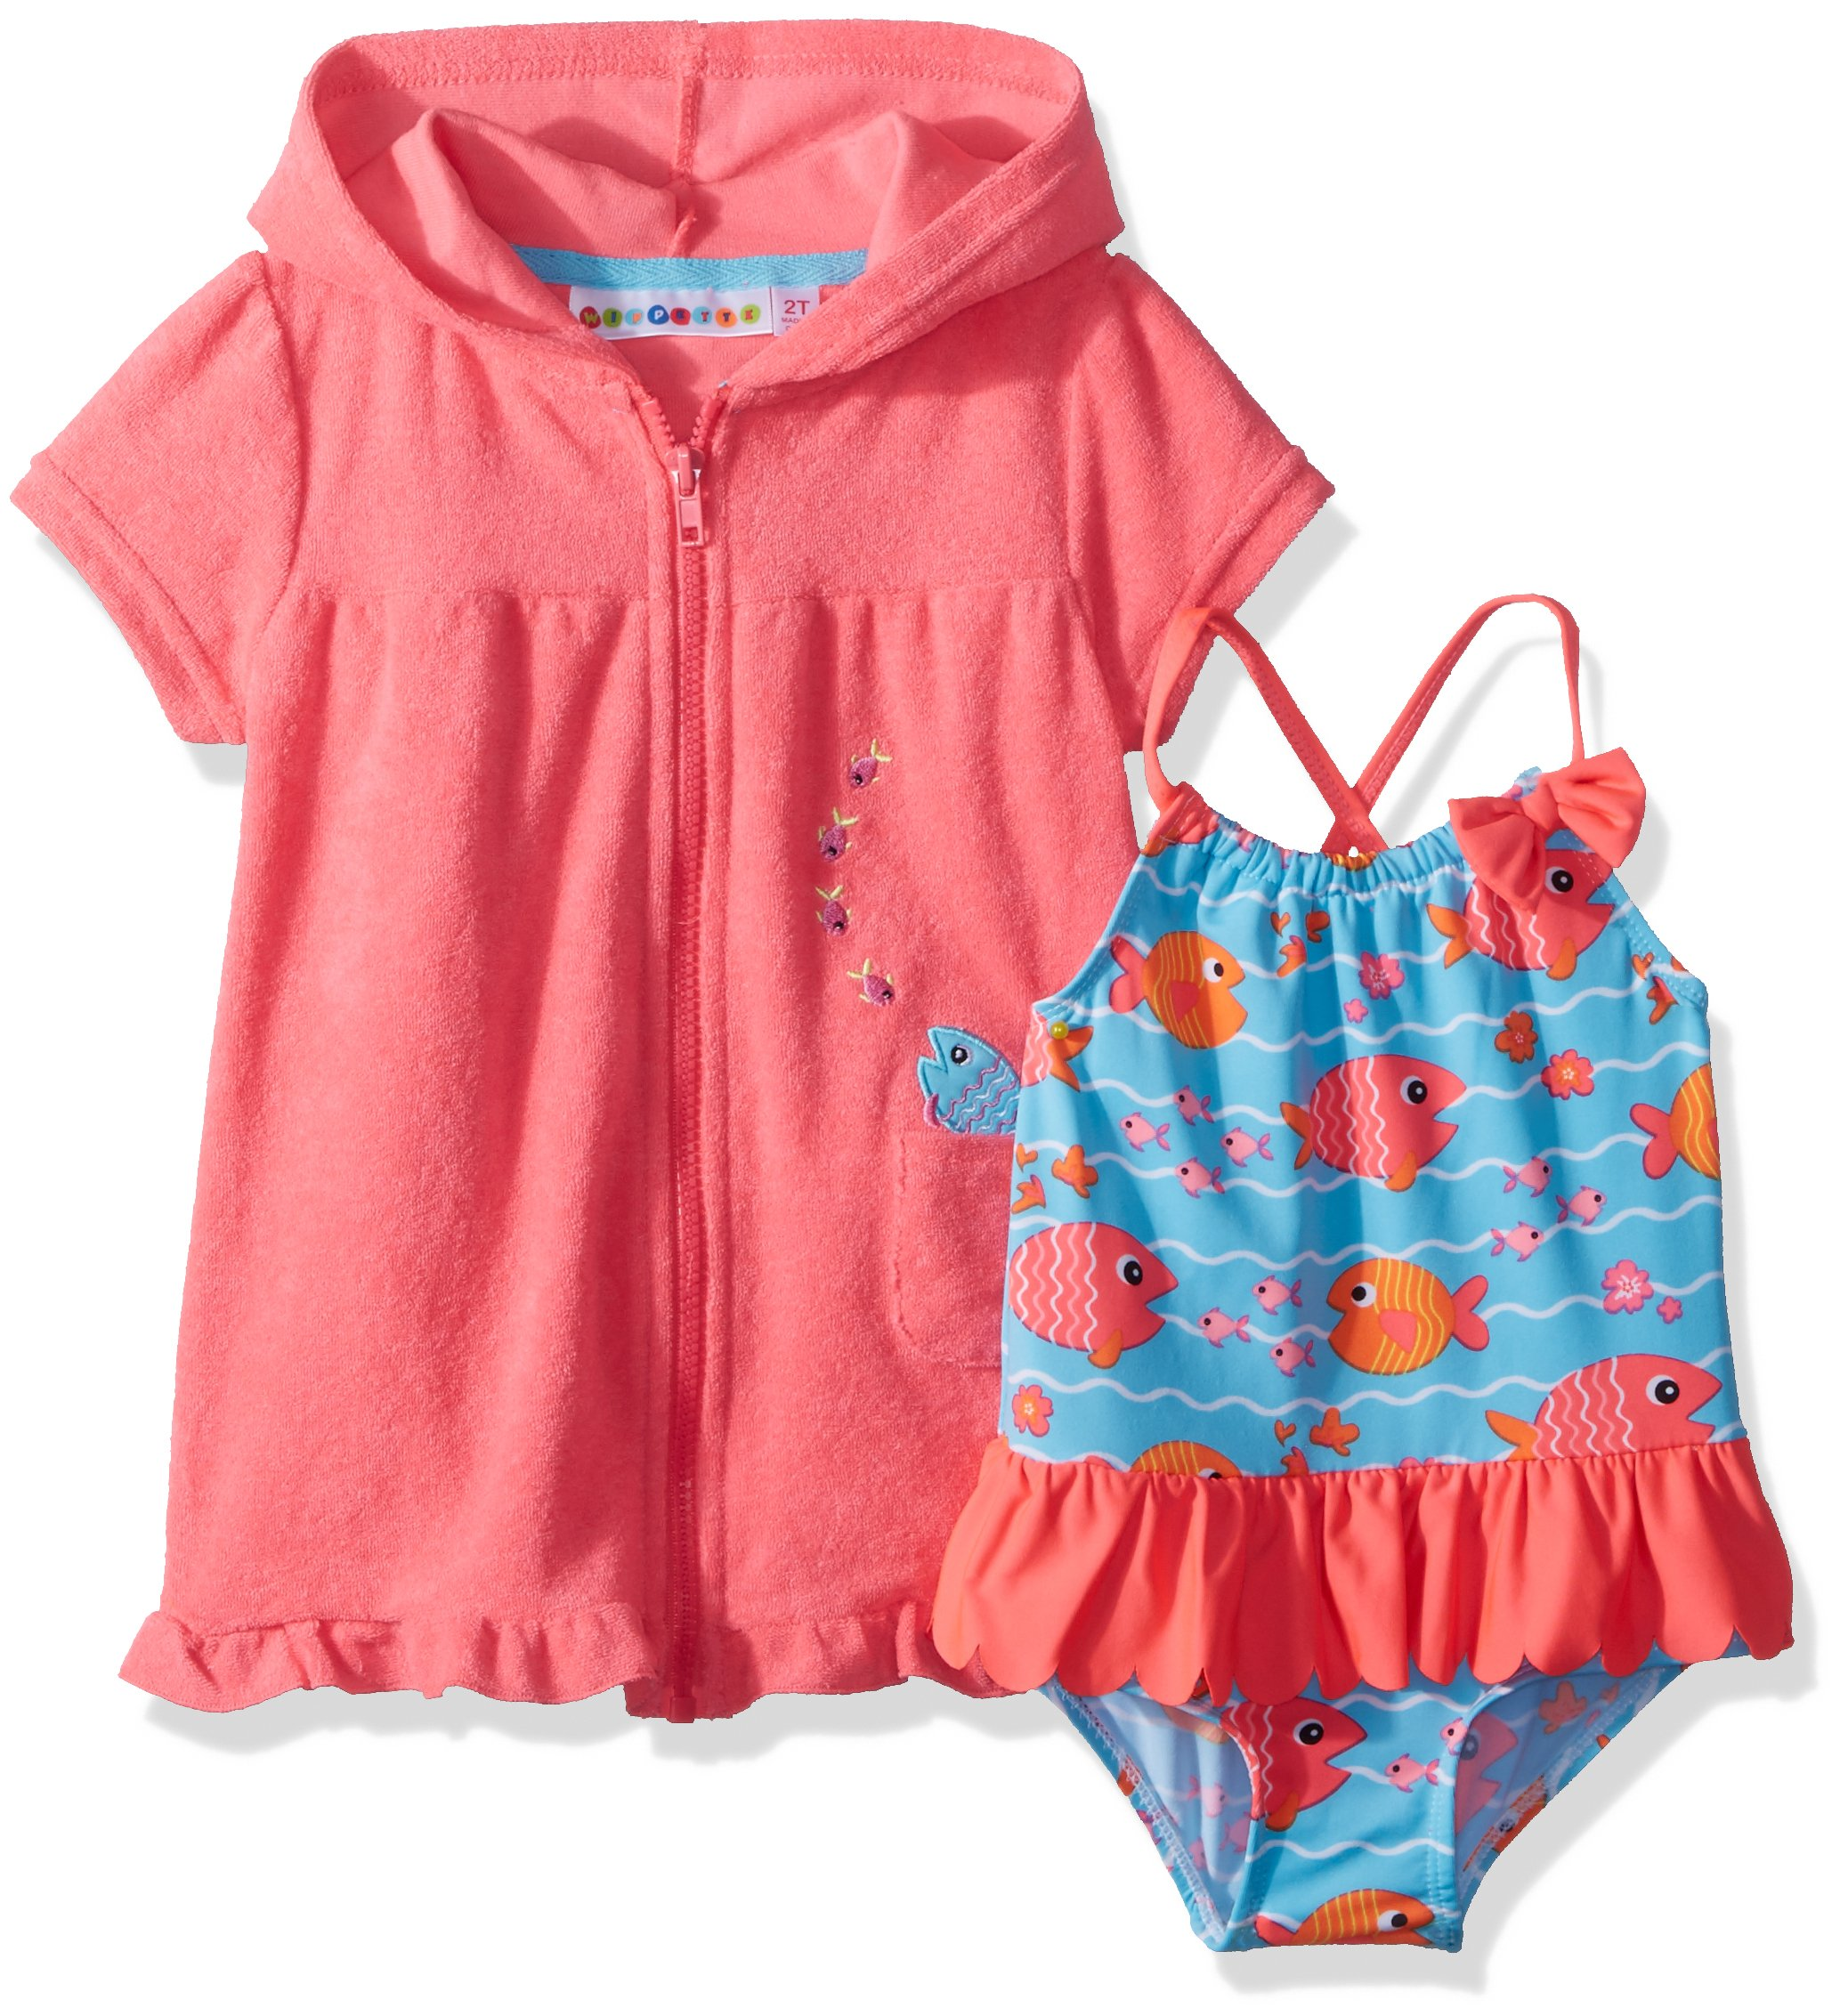 Wippette Toddler Girls' Coverup Set with Fish and Waves, Diva Pink, 2T